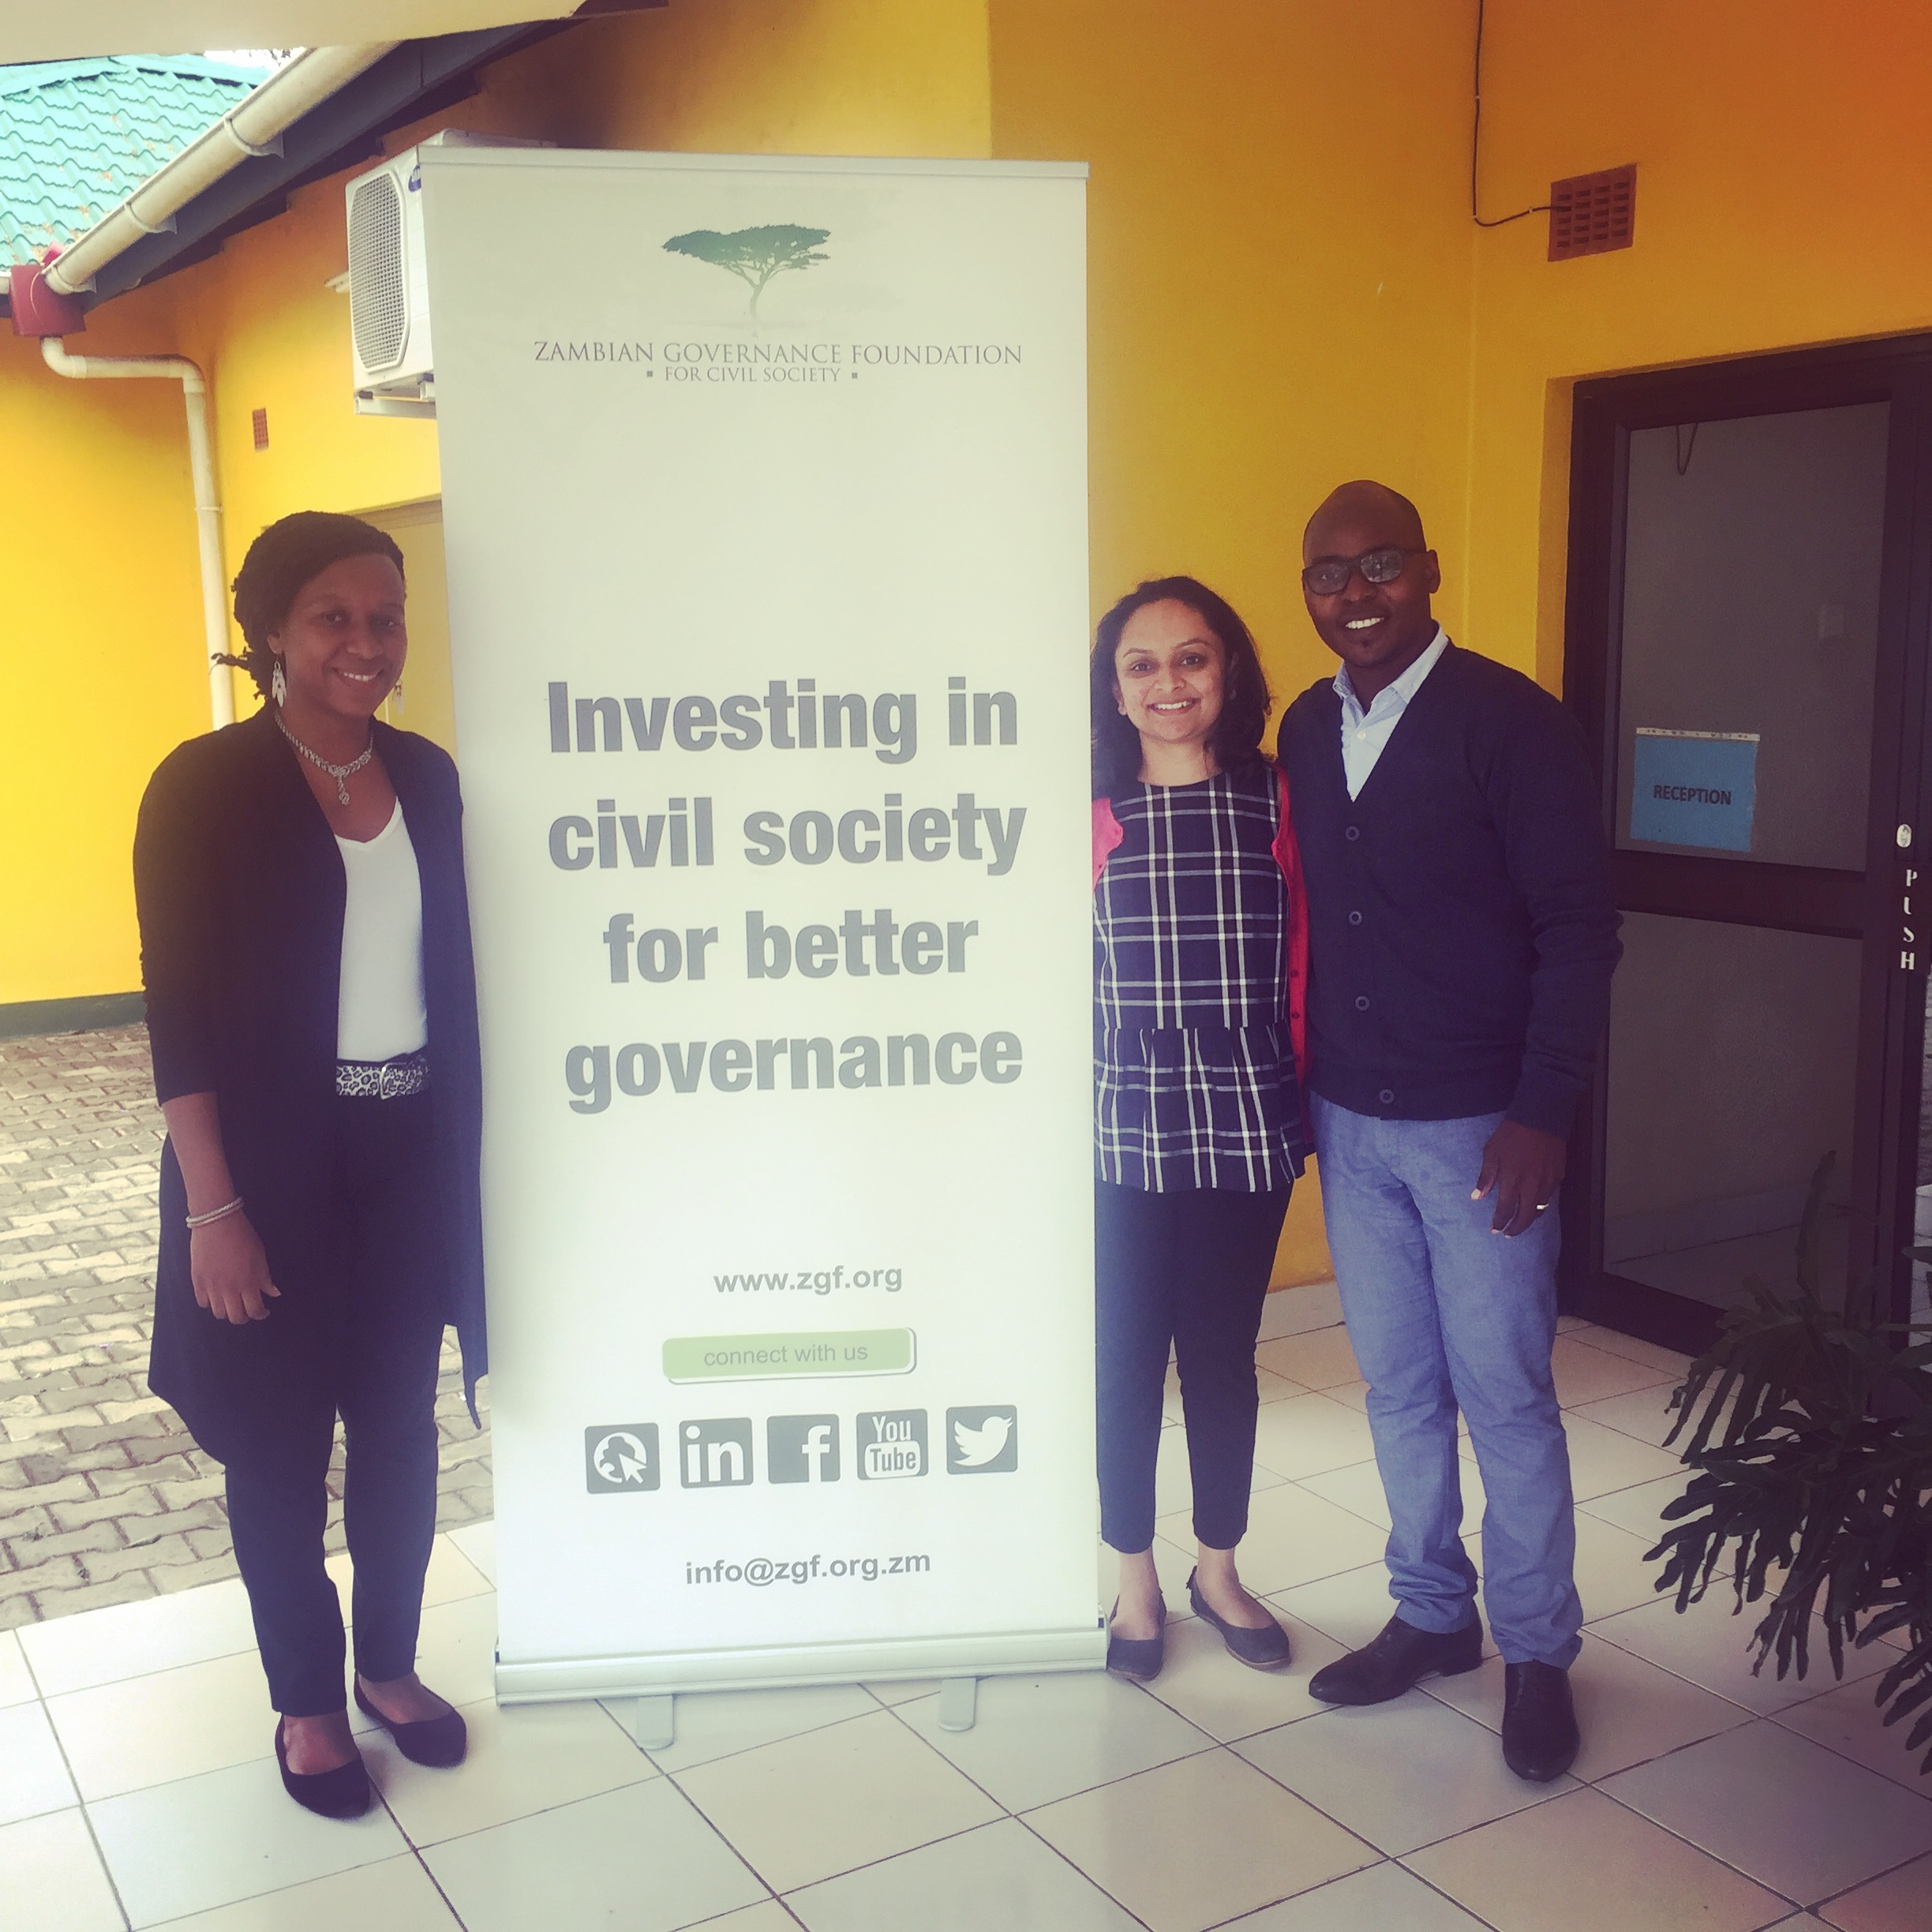 Ankita on her first day at the Zambian Governance Foundation. She was welcomed by ZGF staff who shared their work with her.